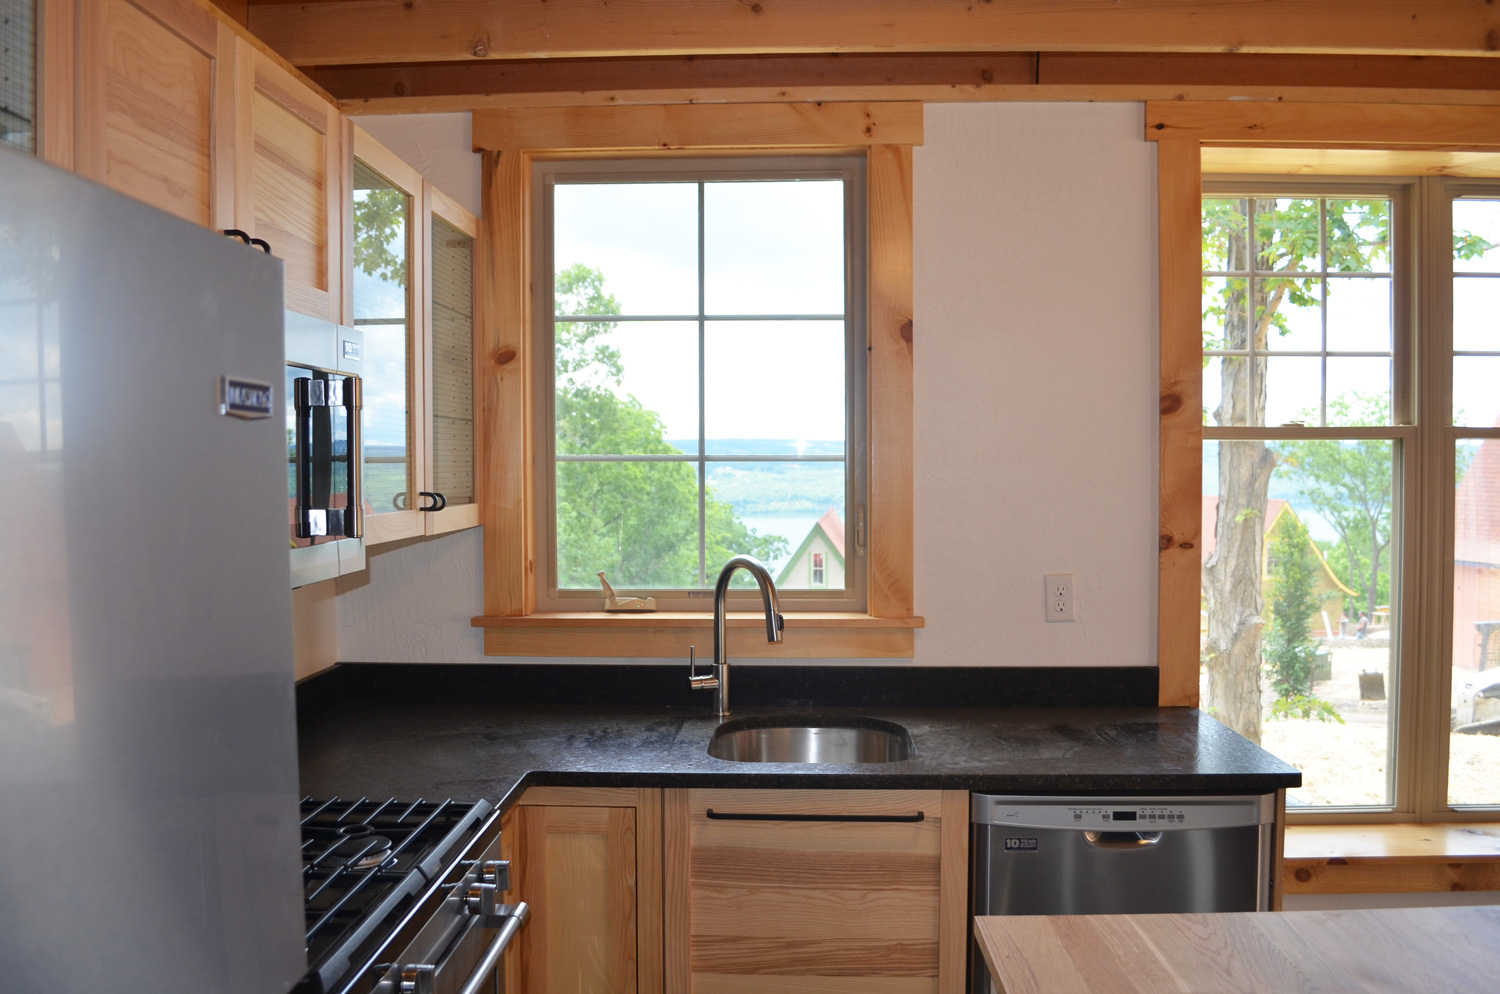 la-bourgade-on-seneca-kitchen-view.jpg